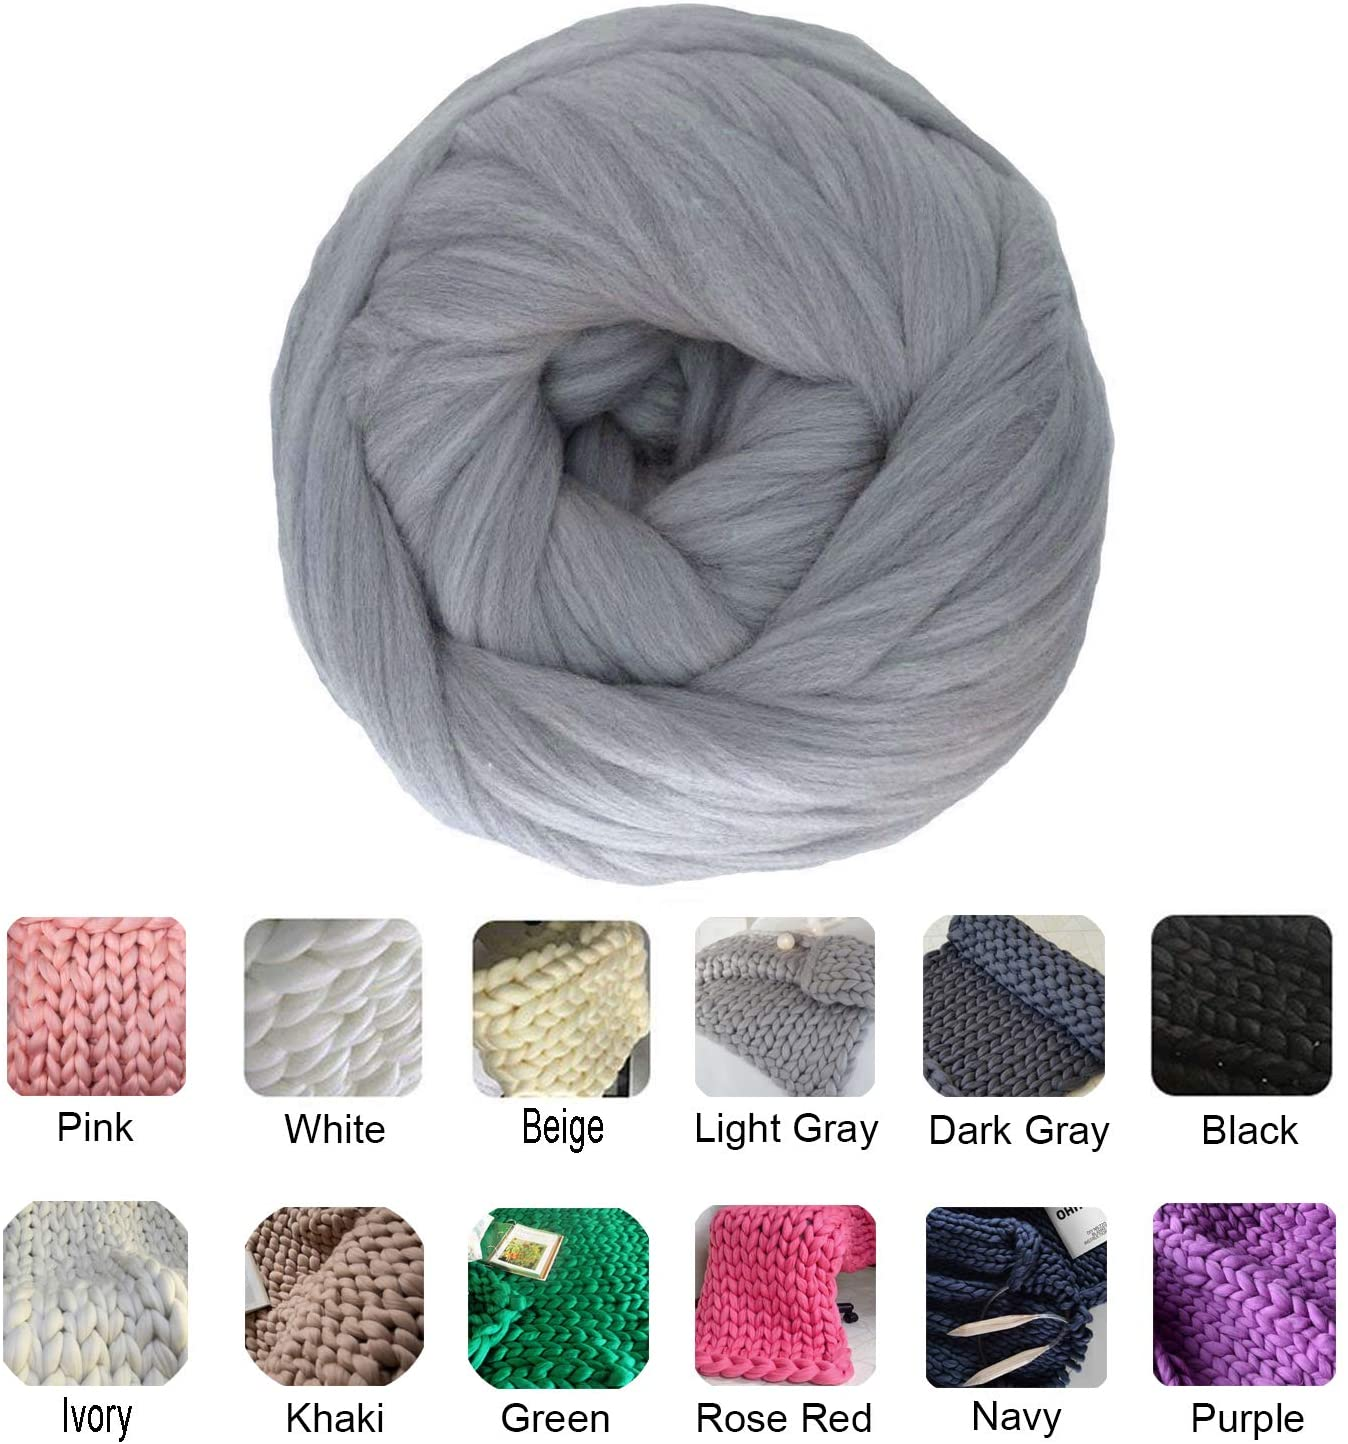 clootess Chunky Merino Wool Yarn Bulky Big Roving for DIY Hand Made Knit Blanket Throw - Light Grey 5 lbs